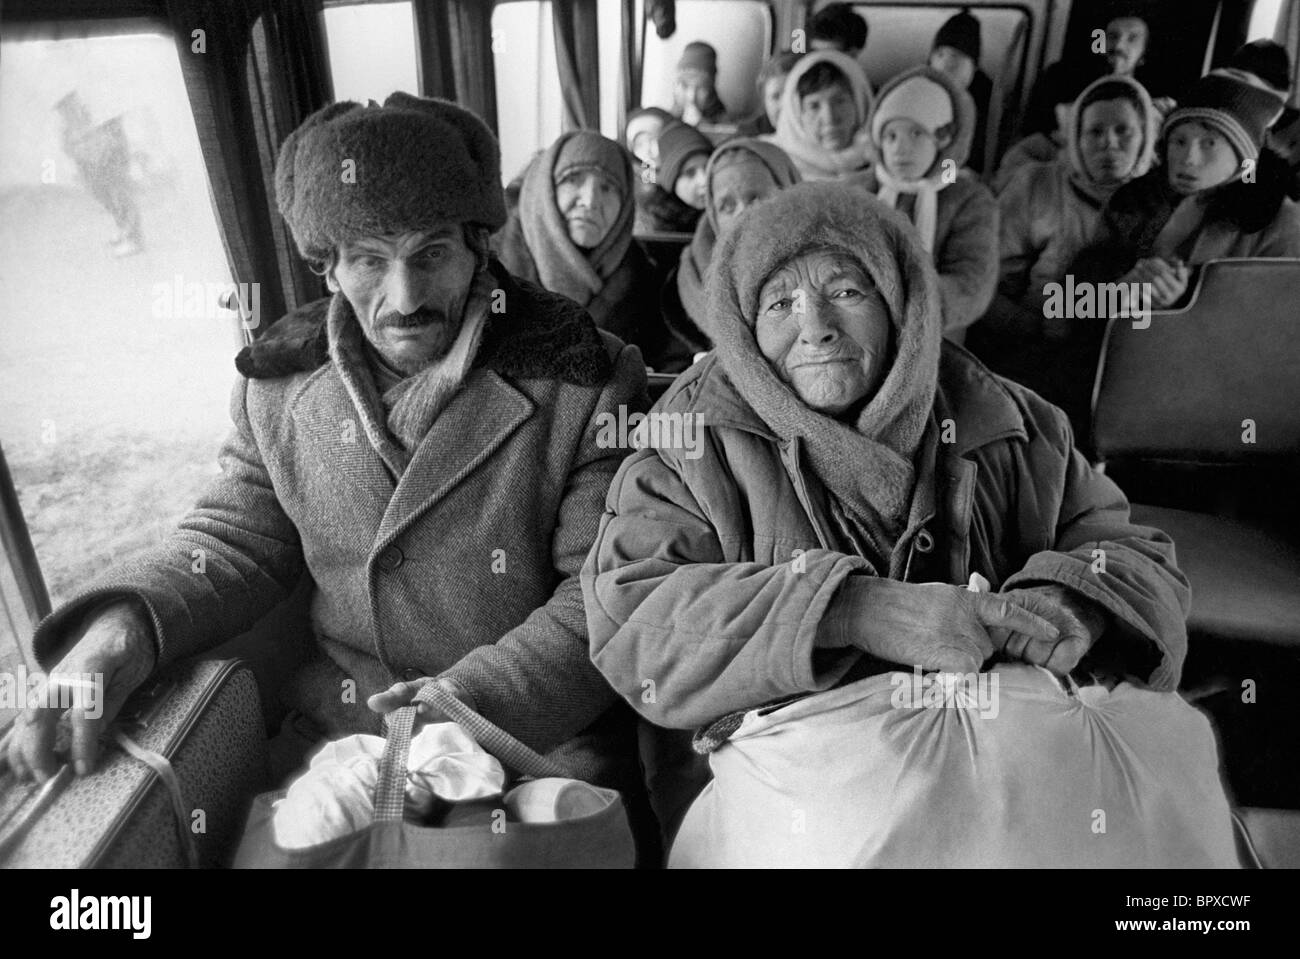 War in Chechnya, 1995 - Stock Image